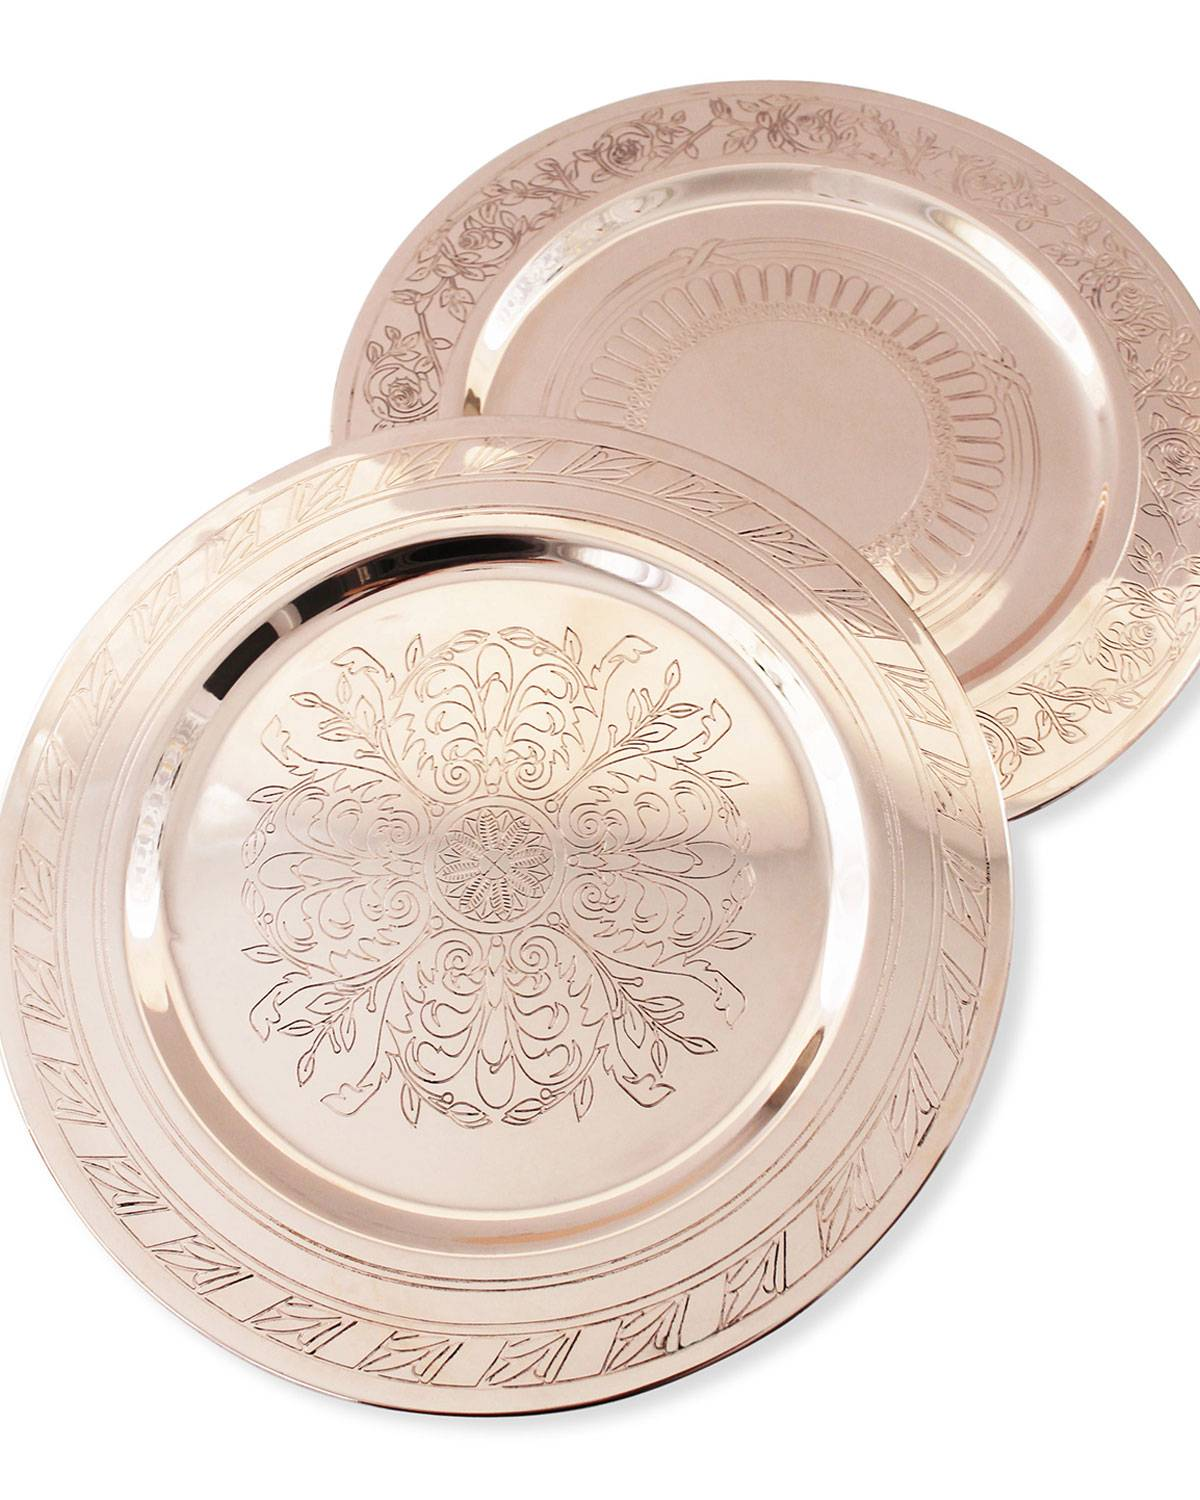 Coppermill Kitchen French Inspired Medallion Chargers